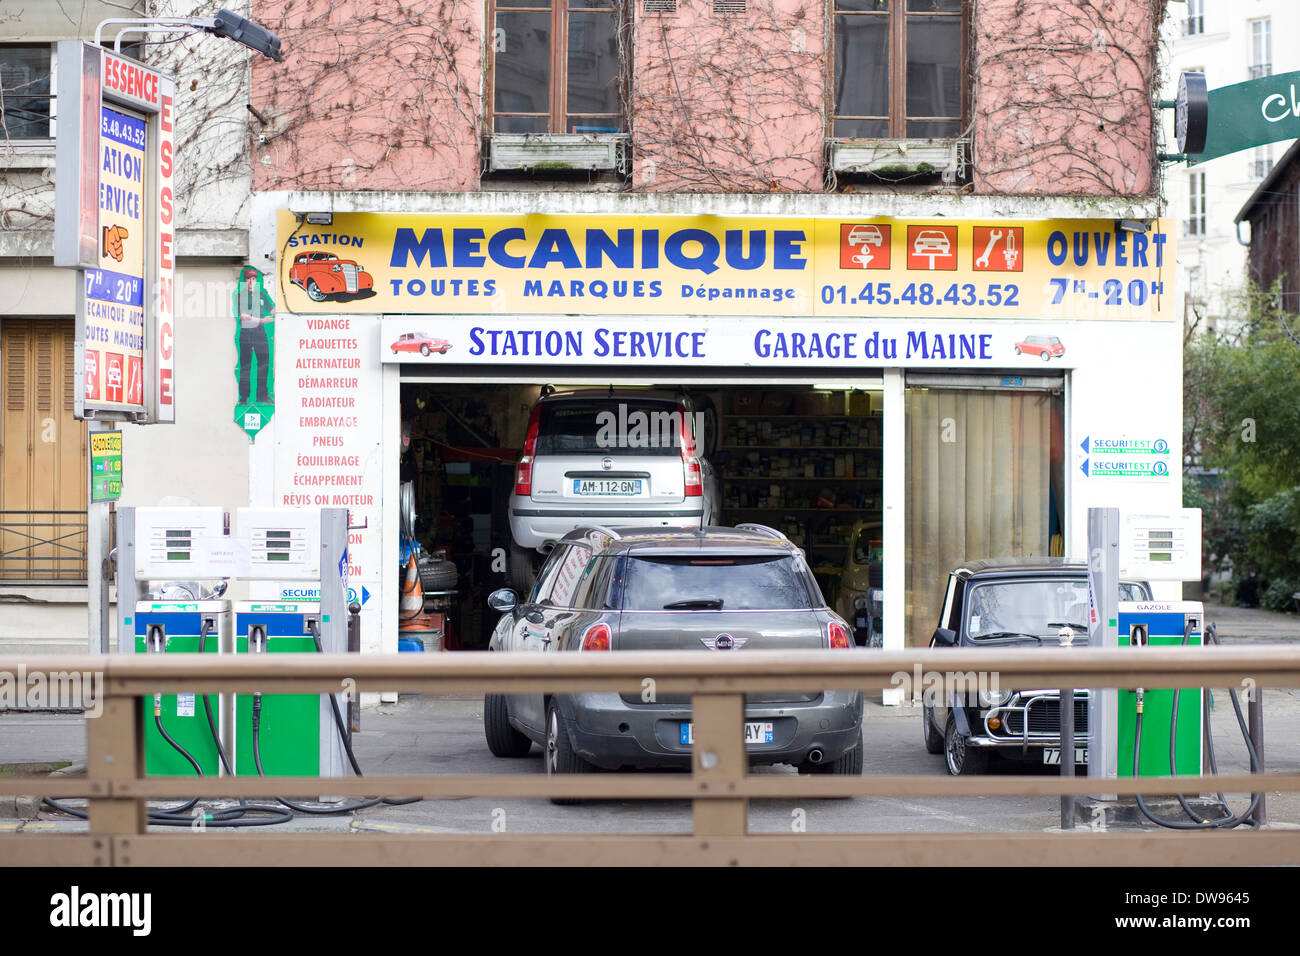 Garage Auto Paris Auto Service Garages Stock Photos Auto Service Garages Stock